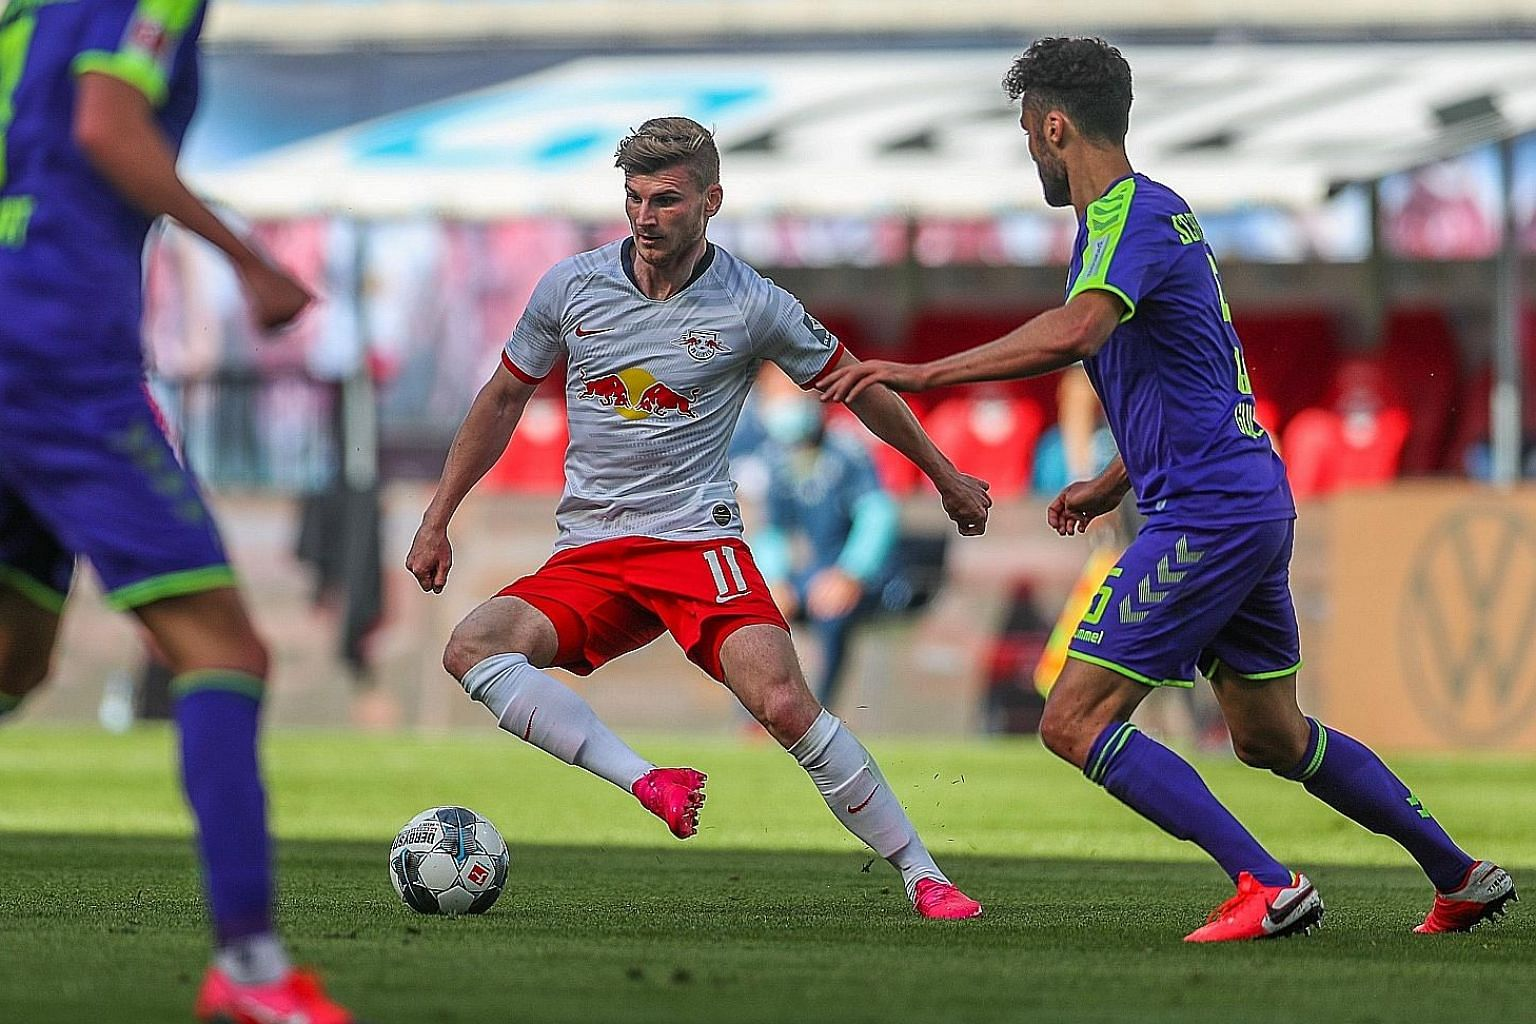 Leipzig striker Timo Werner taking on Freiburg in a Bundesliga game last month. He is set for a move to England next season, with reports revealing the Germany international has agreed terms with Premier League side Chelsea.